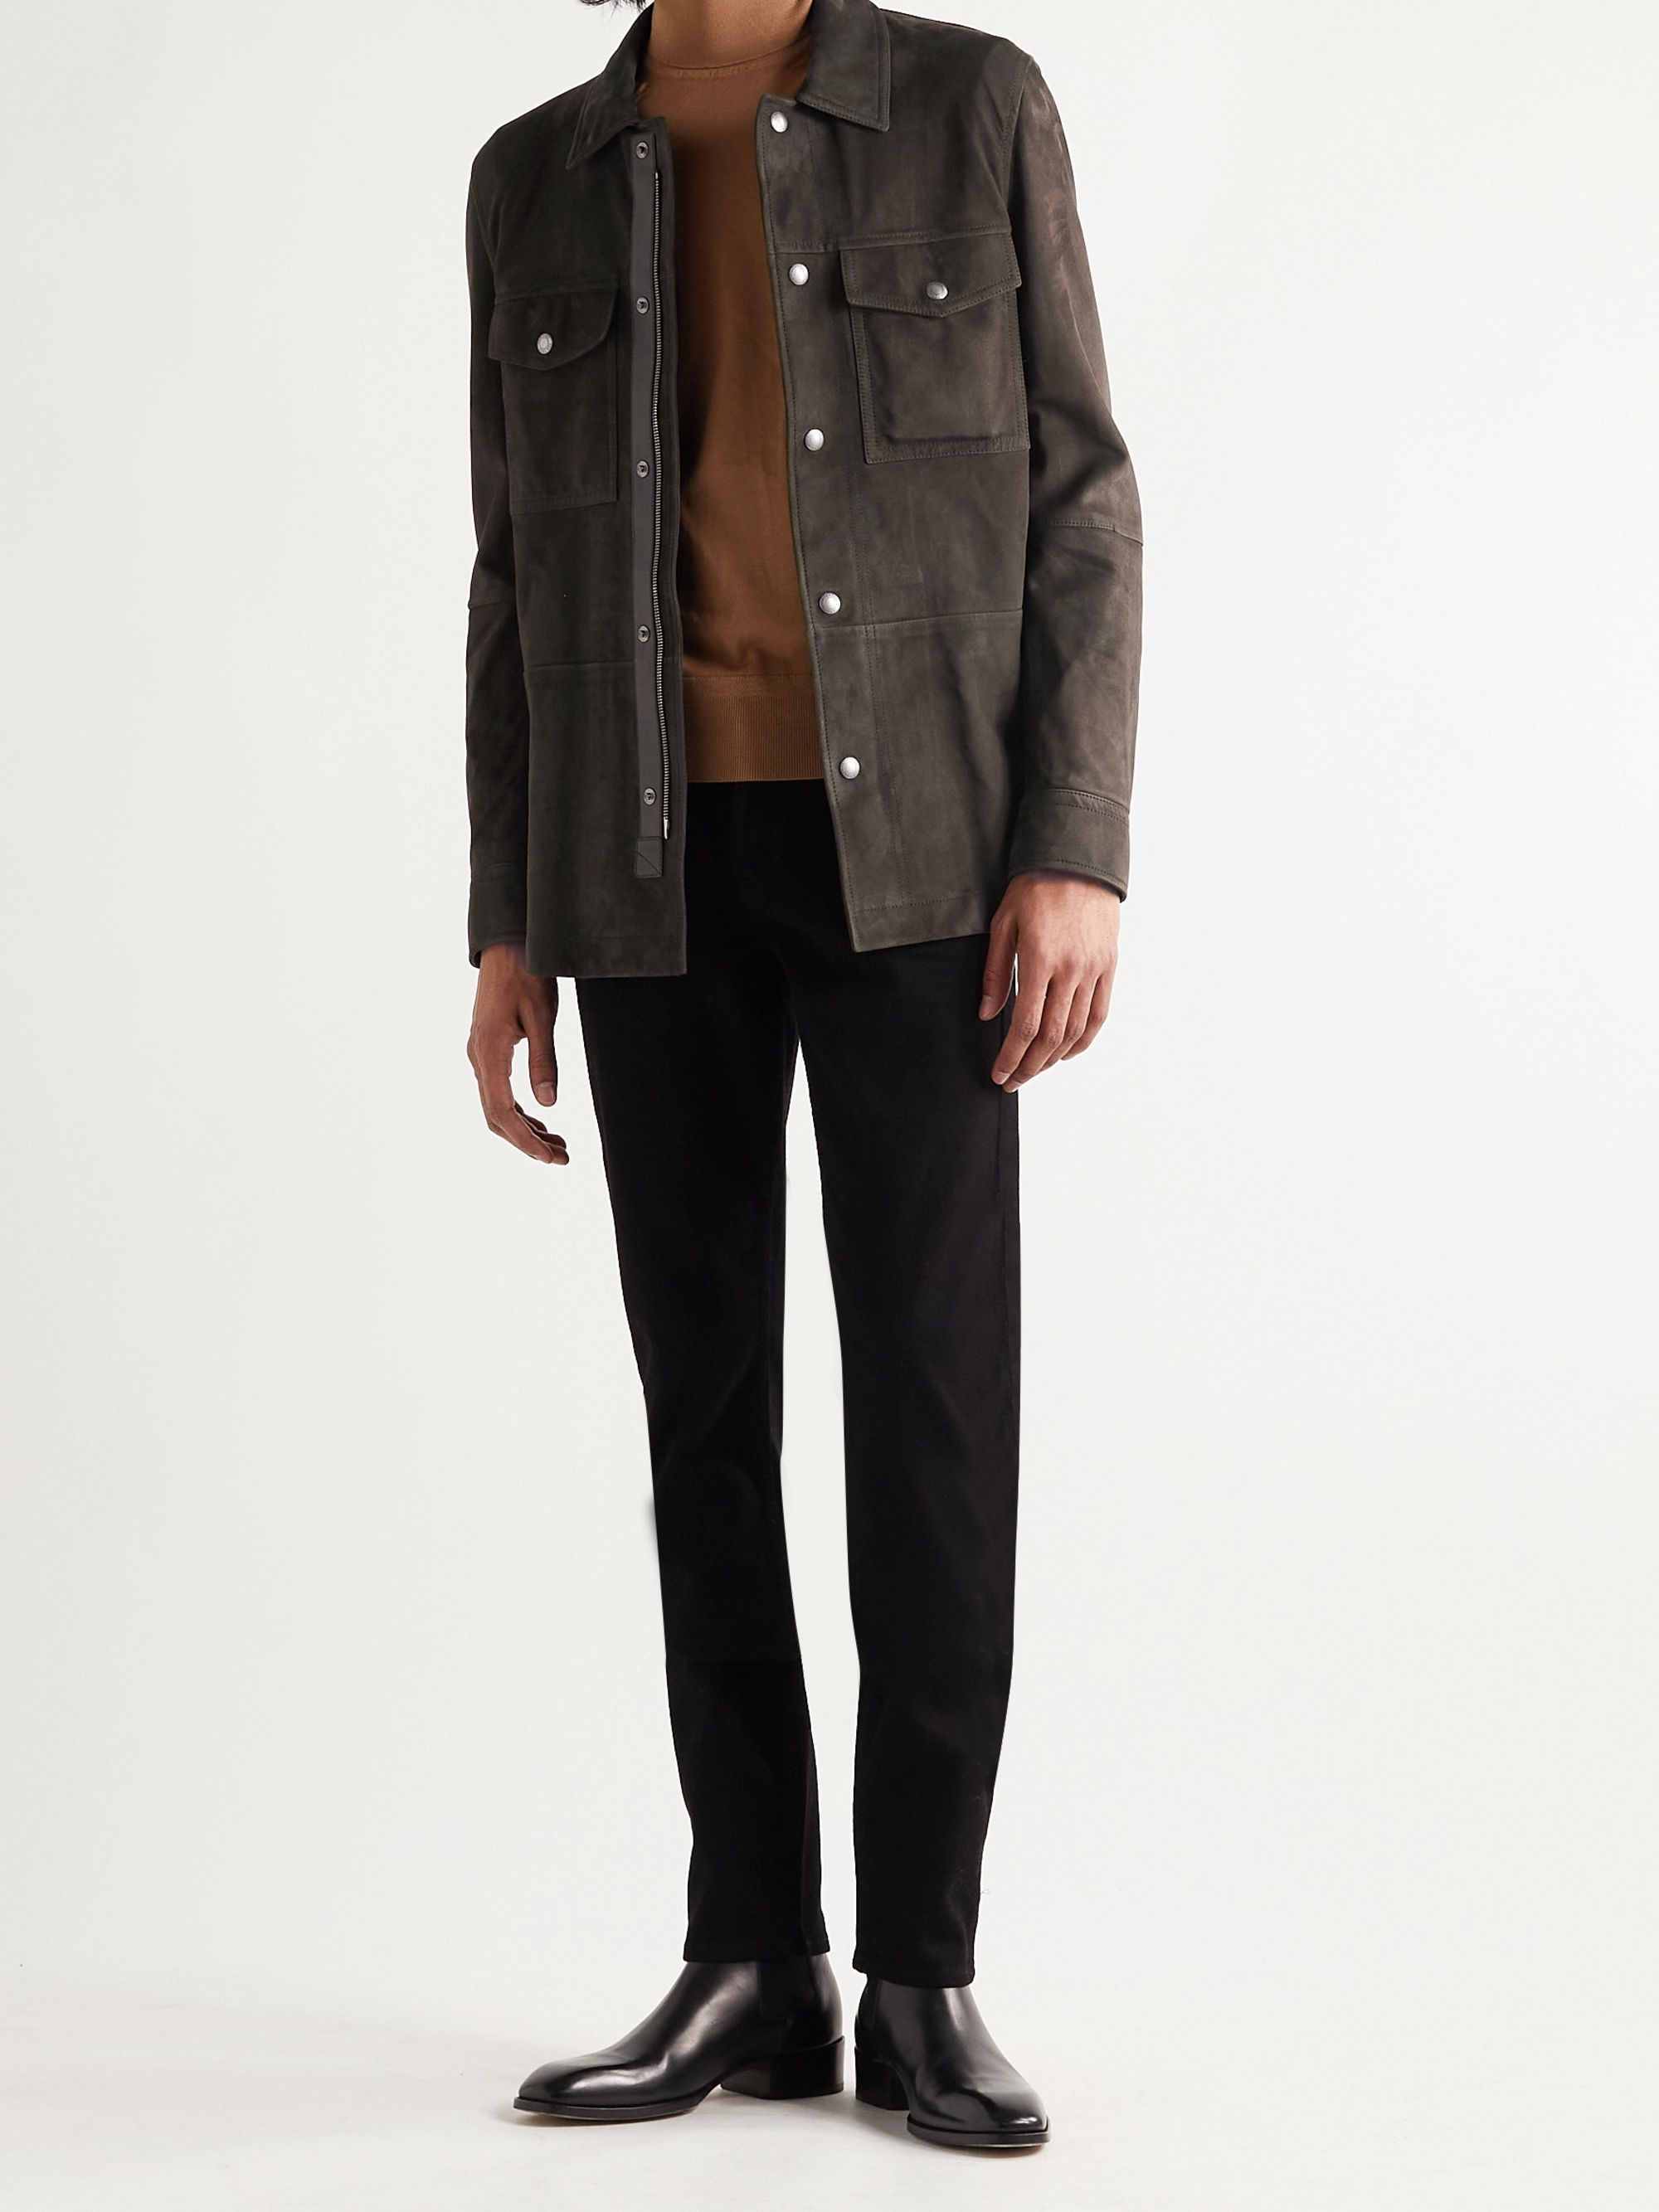 TOM FORD Suede Overshirt